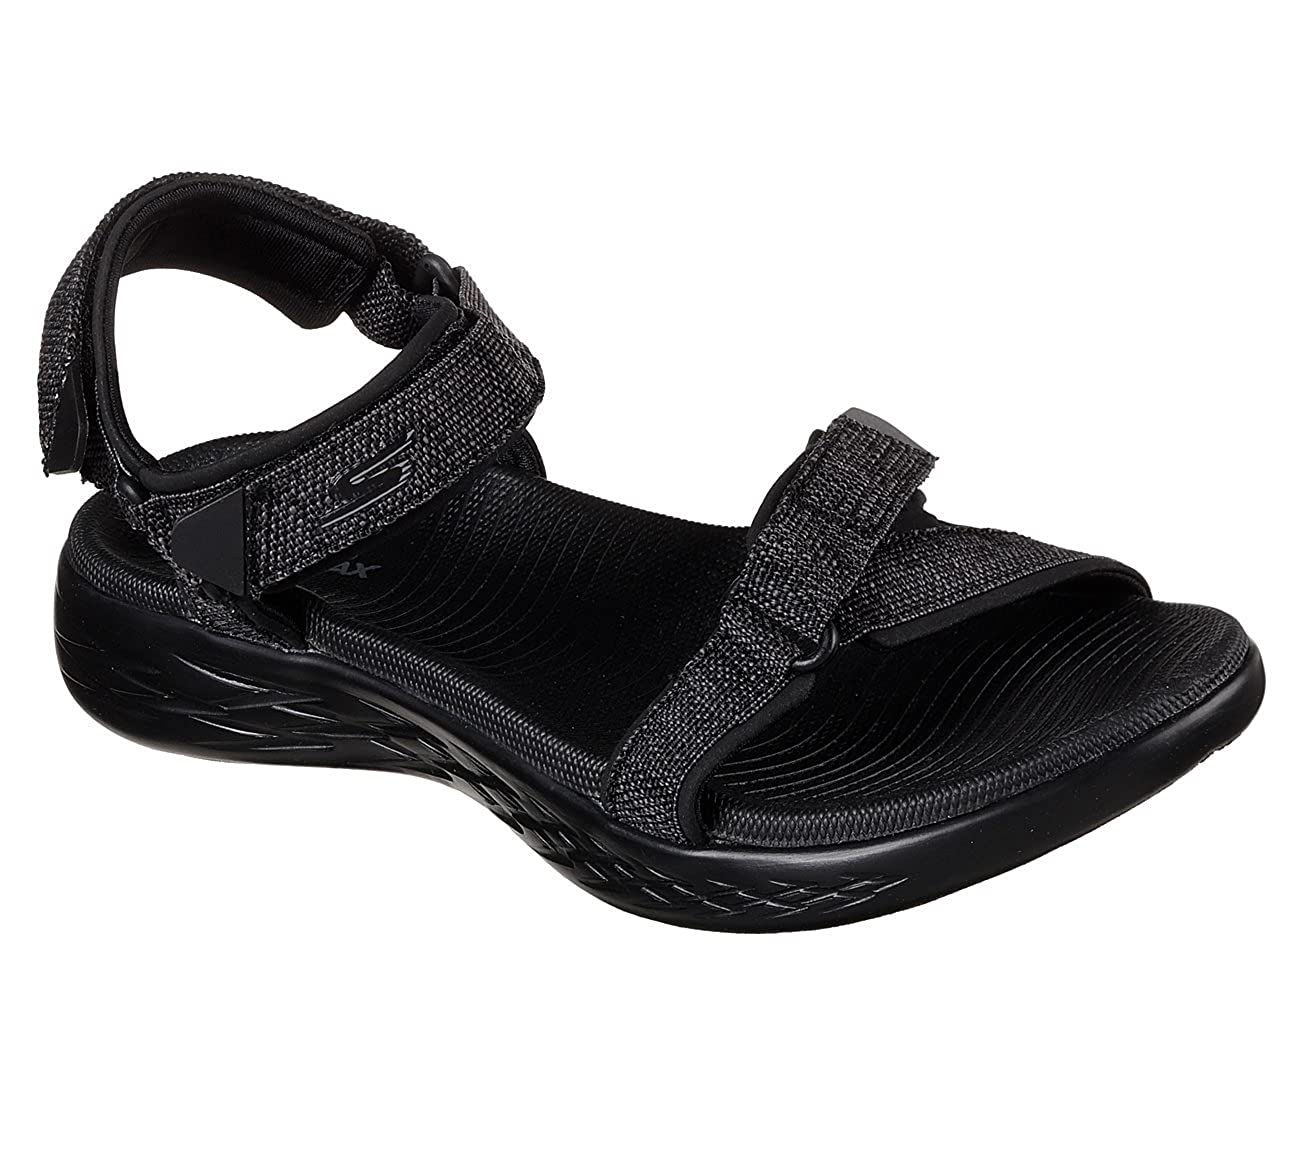 92c6d82a0cf4 Skechers On The Go 600 Women s Radiant Sandals - SS18  Amazon.co.uk  Shoes    Bags